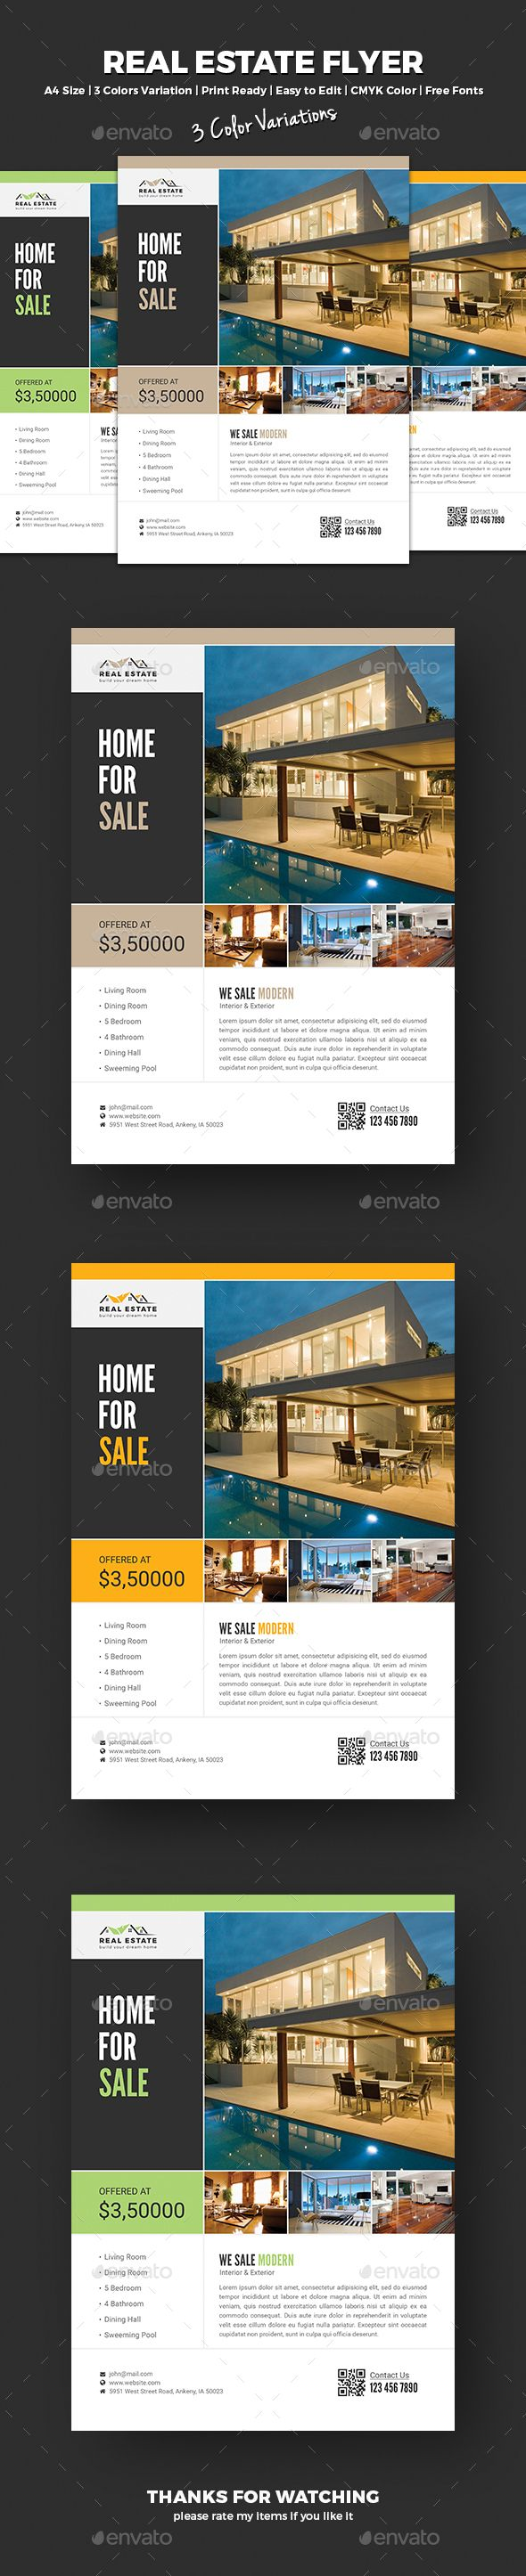 #Real Estate Flyer - Corporate Flyers Download here: https://graphicriver.net/item/real-estate-flyer/17759963?ref=Classicdesignp